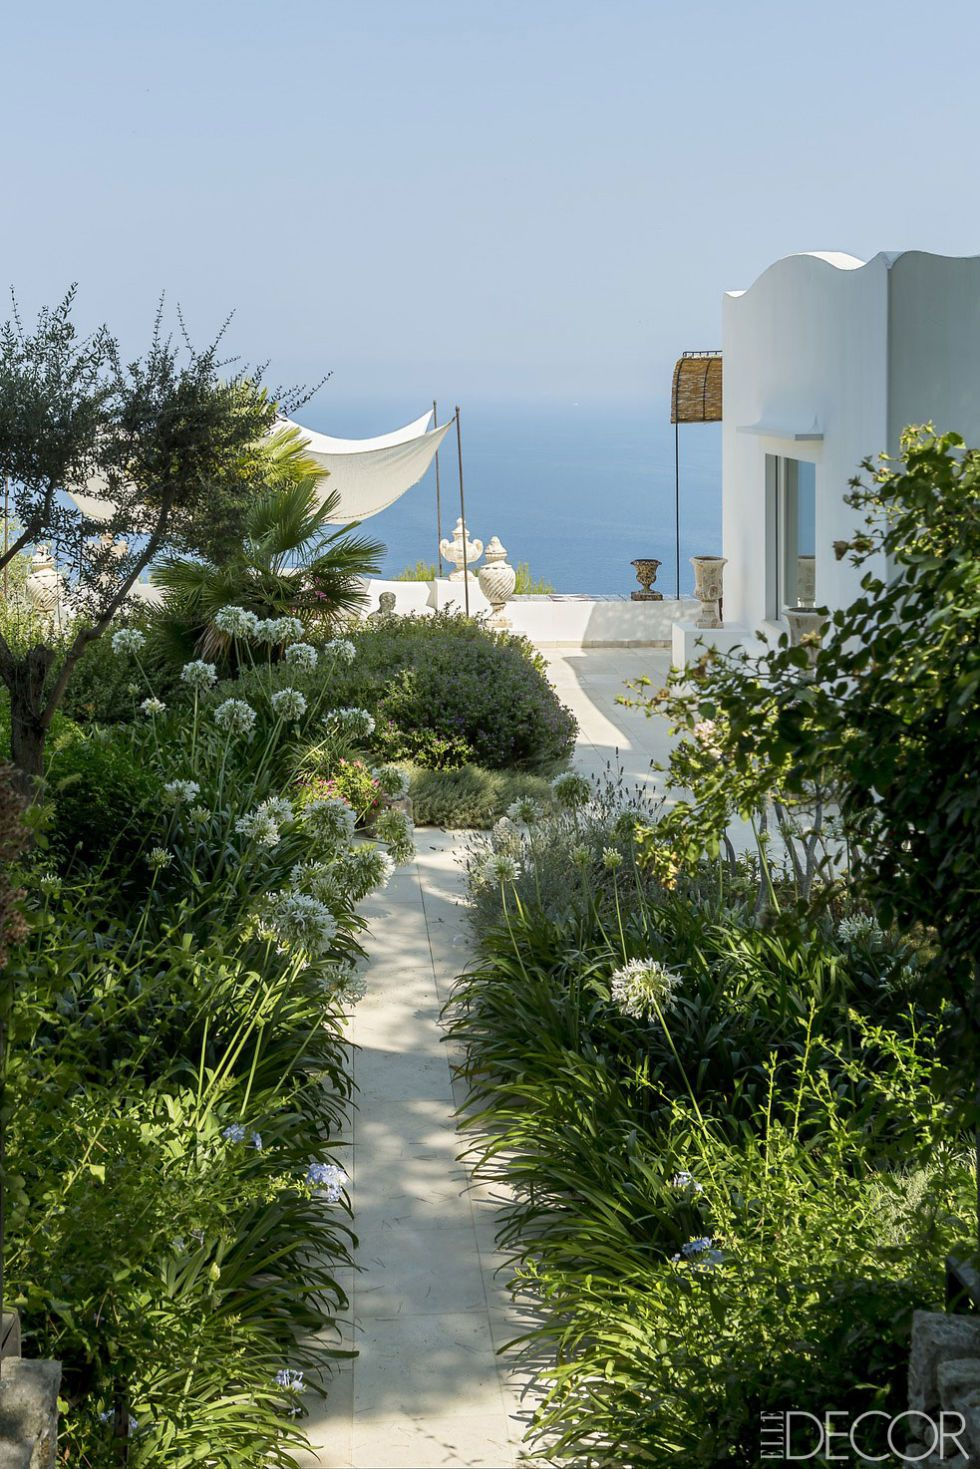 dream garden #gardencare A similar sense of timelessness also permeates the garden, which includes a grove of orange and lemon trees, as well as a long colonnade leading to a terrace overlooking the sea. The garden had been abandoned, but it was still among the most beautiful Id ever seen, says garden designer Antonella Sartogo. Delicate palette of native plants. The entrance to the garden is planted with boxwood and agapanthus. - ELLEDecor.com